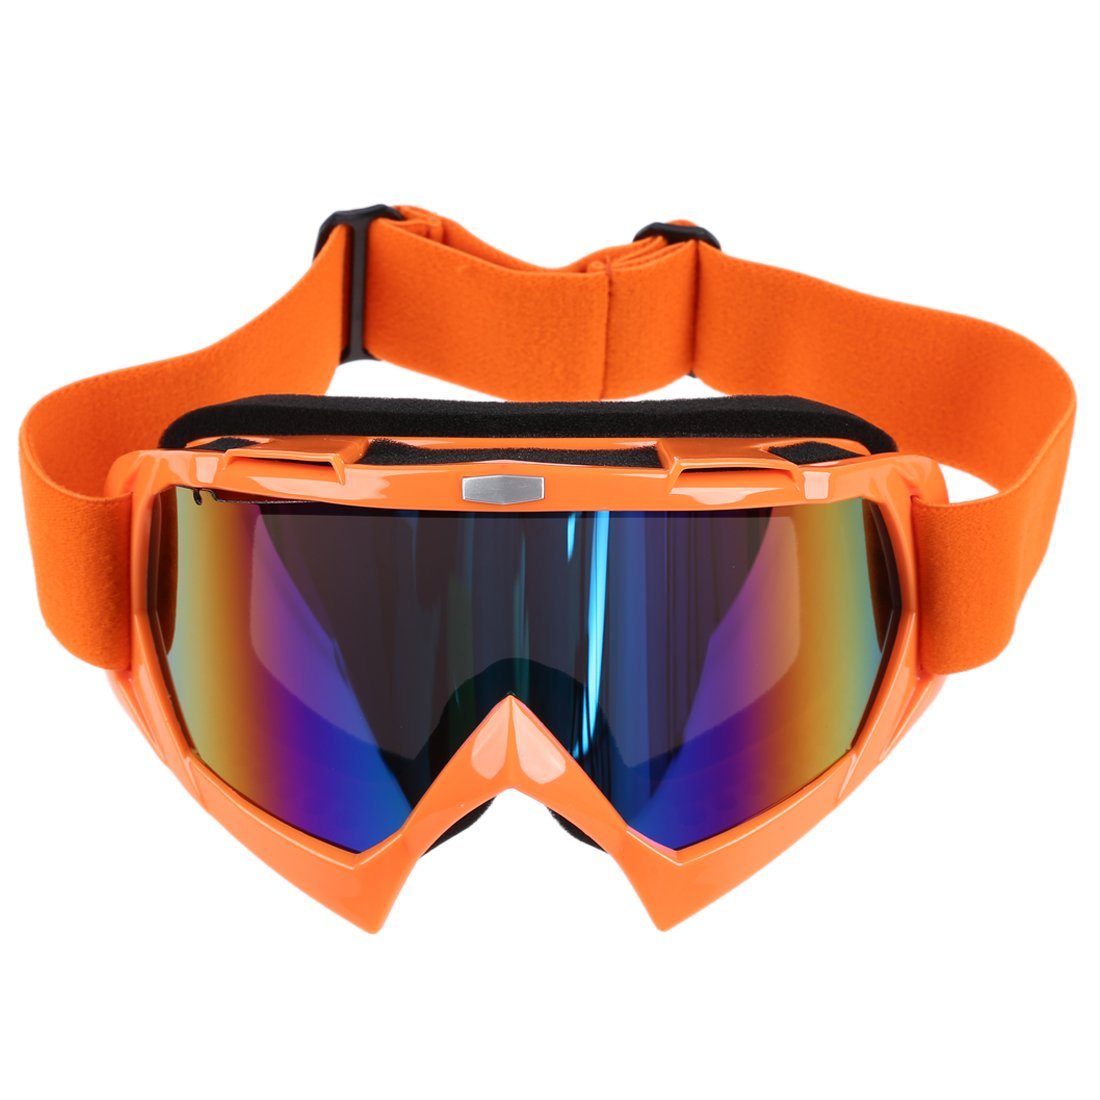 Cikuso Lentille Unique Motocross Goggles Lunettes de ATV Cross-Country Dirt Velo Moto Ski Rouge